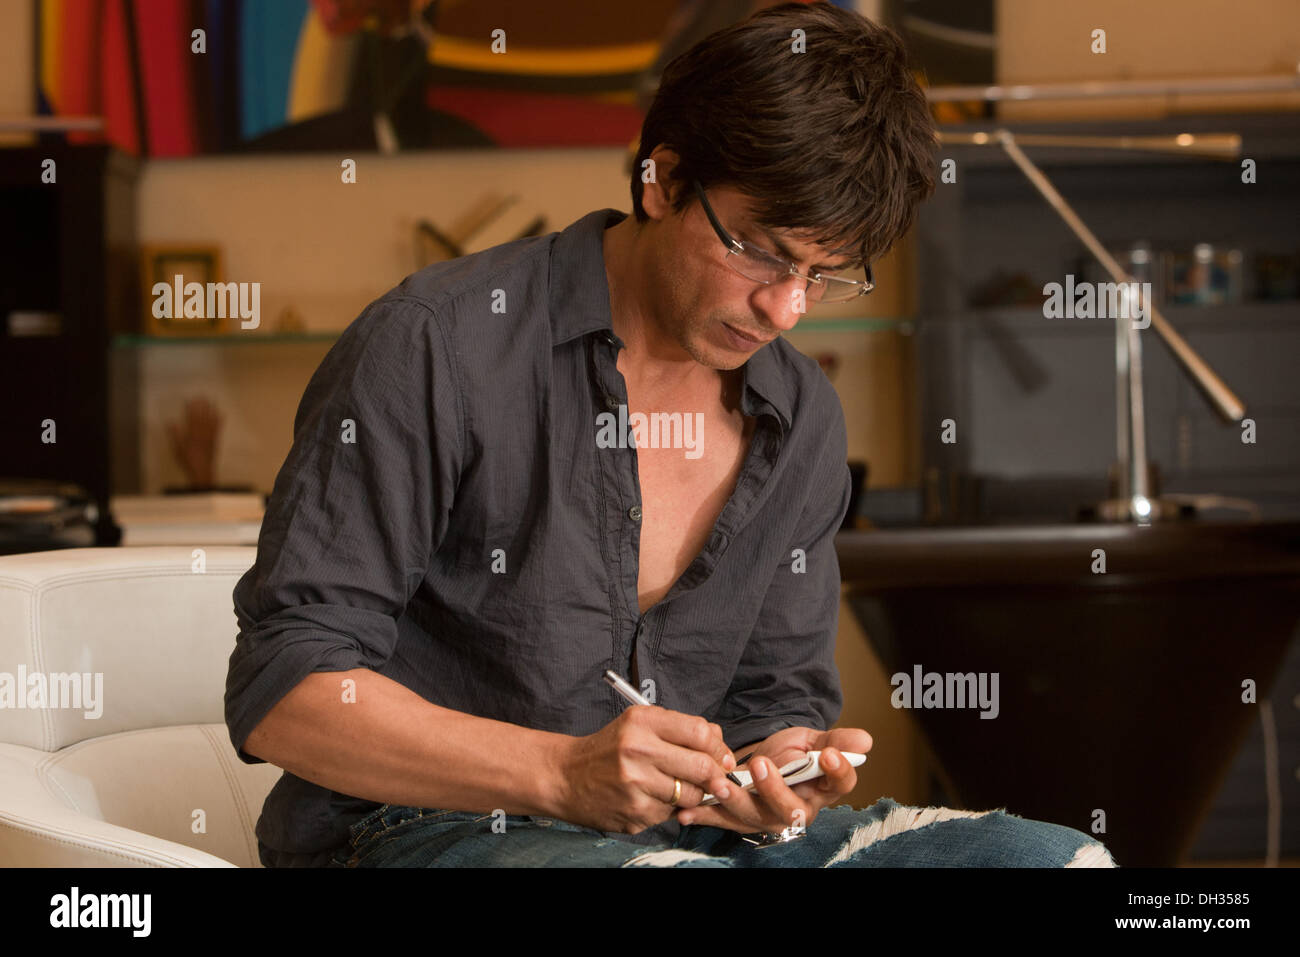 Indian bollywood hindi film Actor Shah Rukh Khan in black shirt Stock Photo  - Alamy